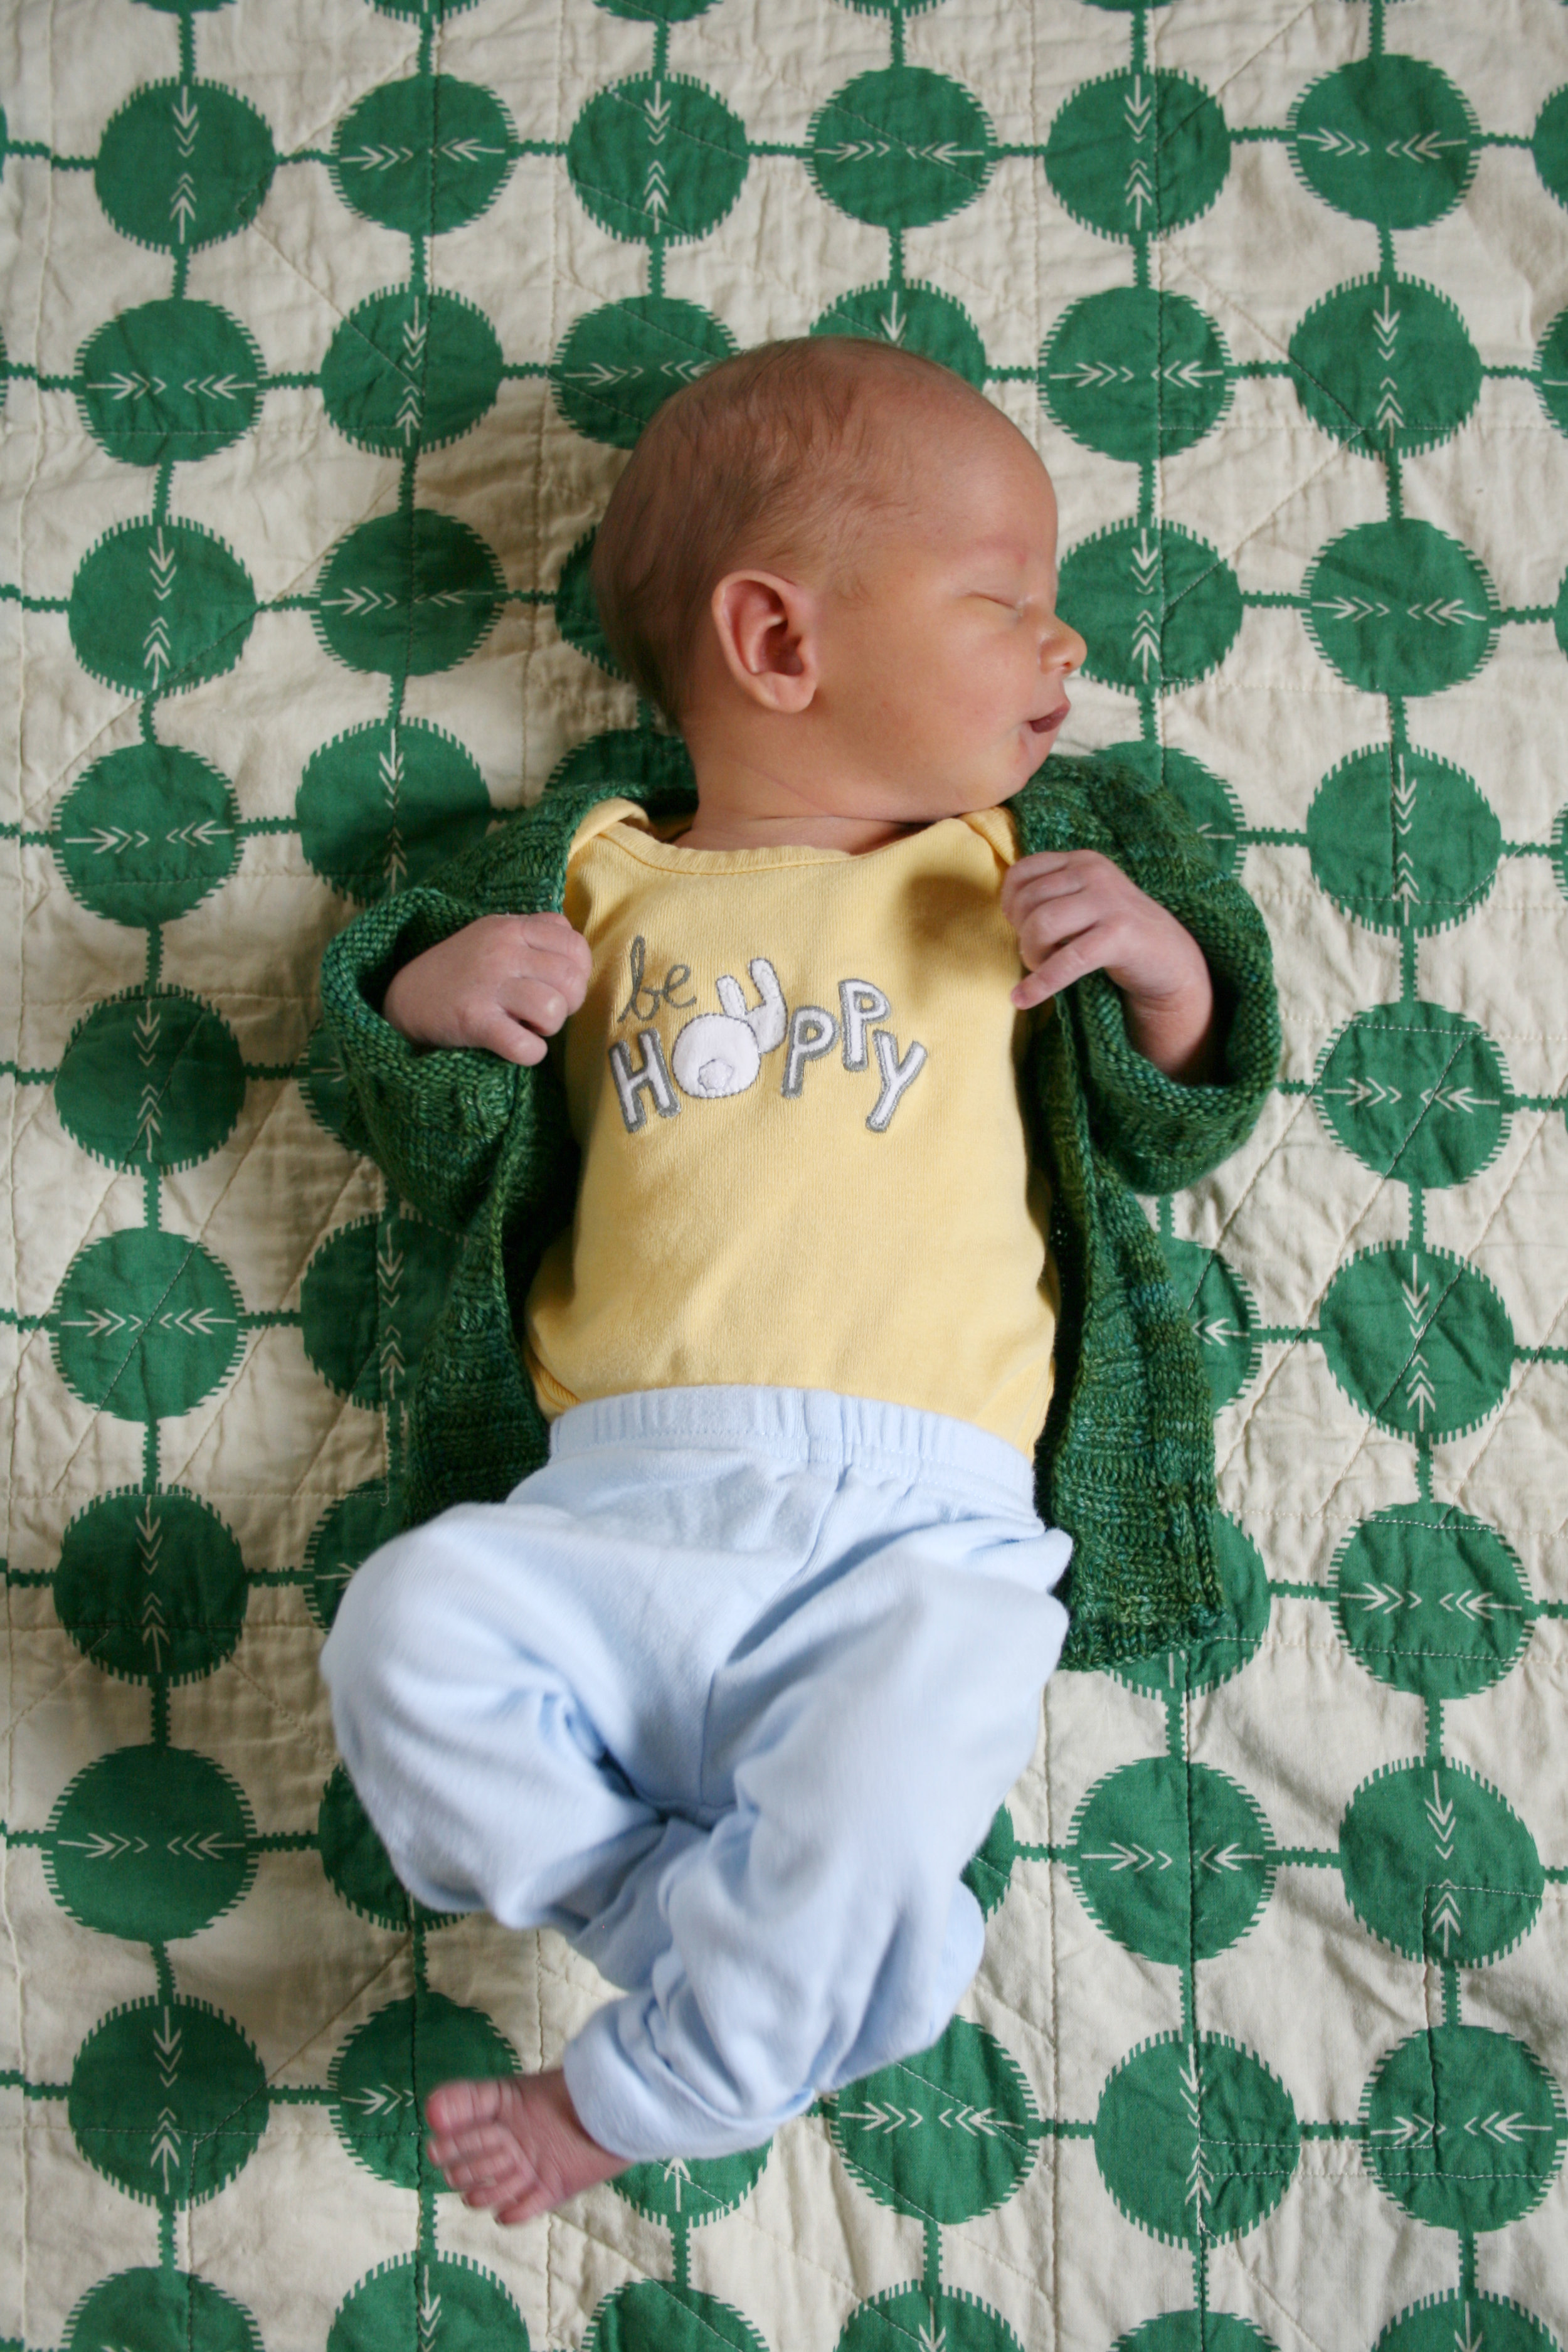 James, one week old - on a quilt at home.